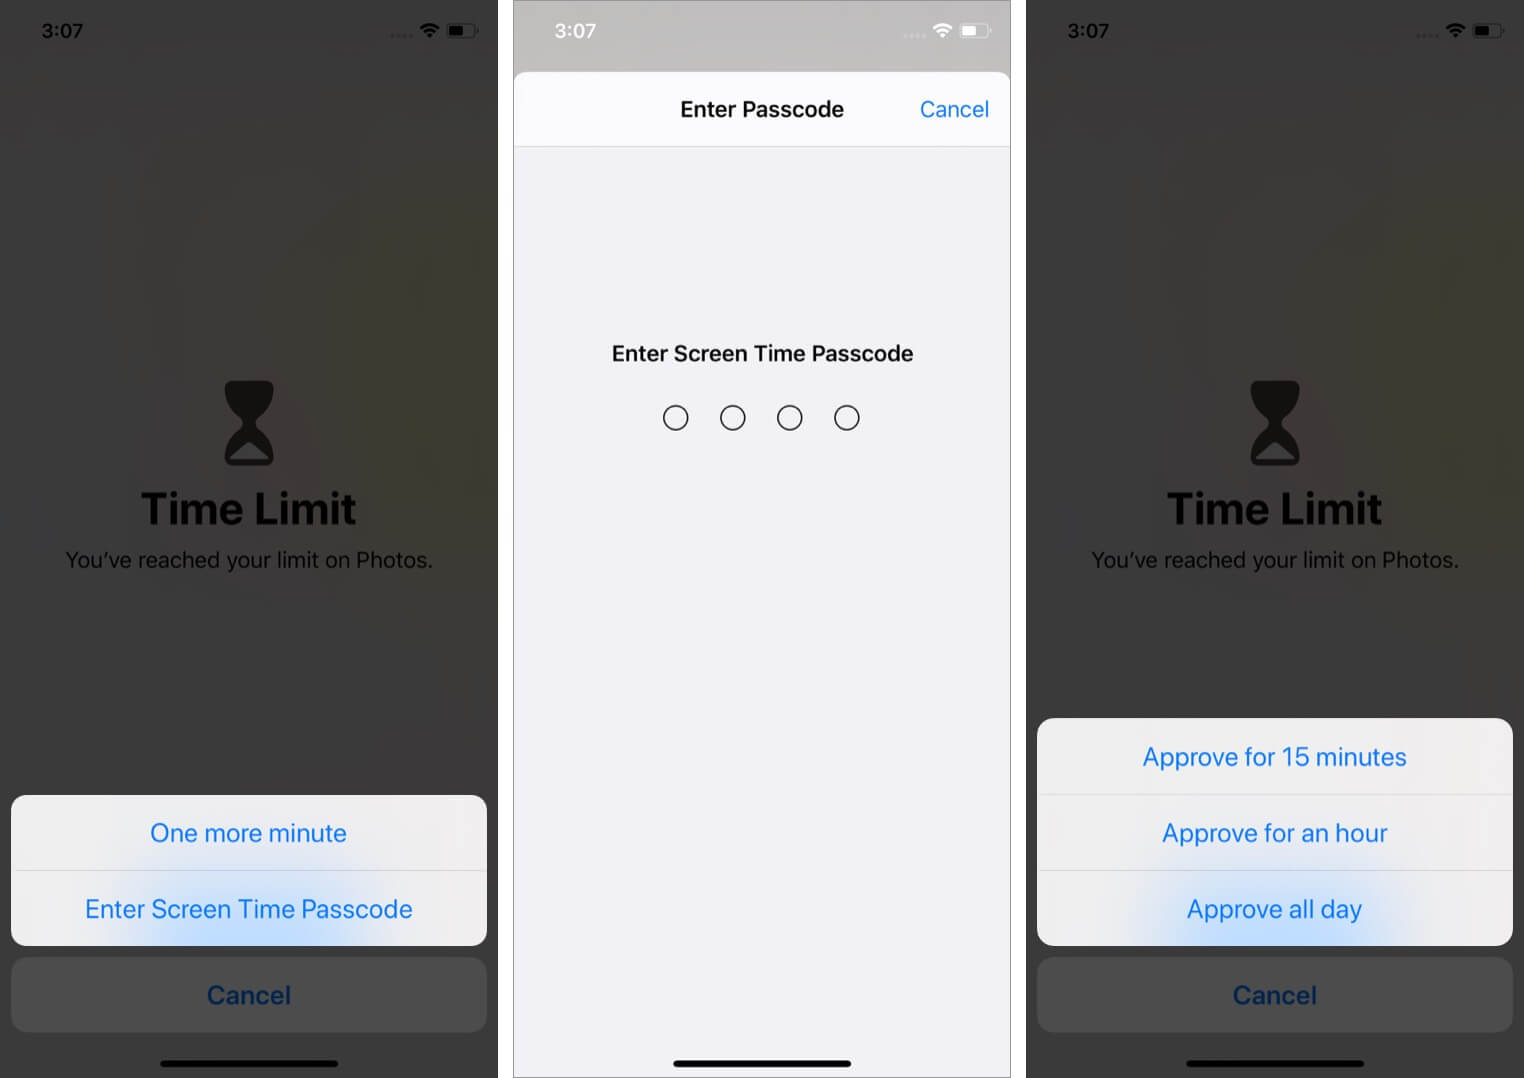 tap on enter screen time passcode and select time to unlock apps on iphone